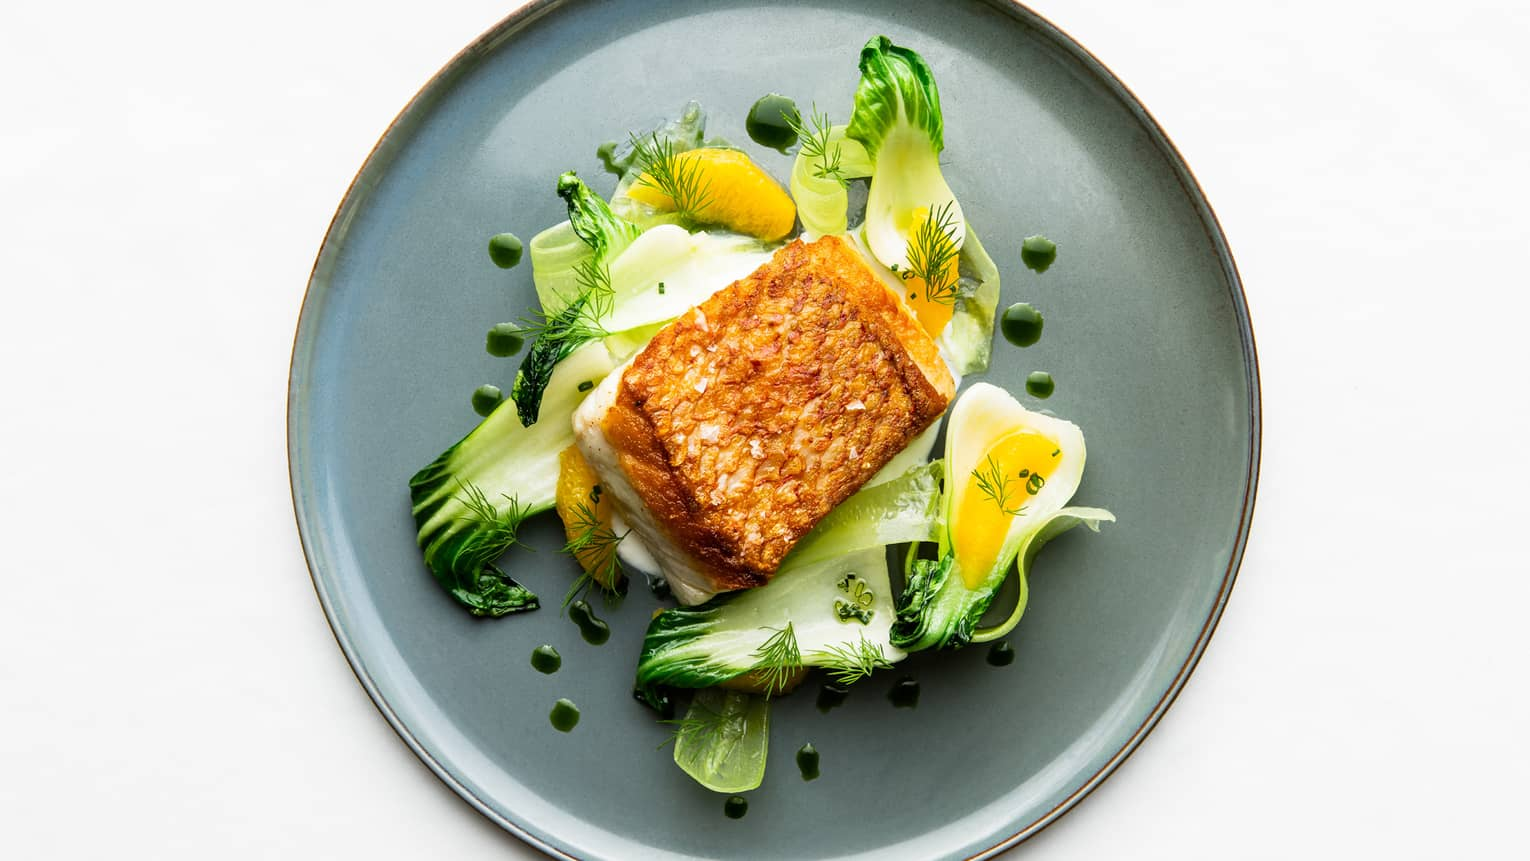 Aerial view of Florie's Seared Snapper Fillet on bed of bok choy and orange slices